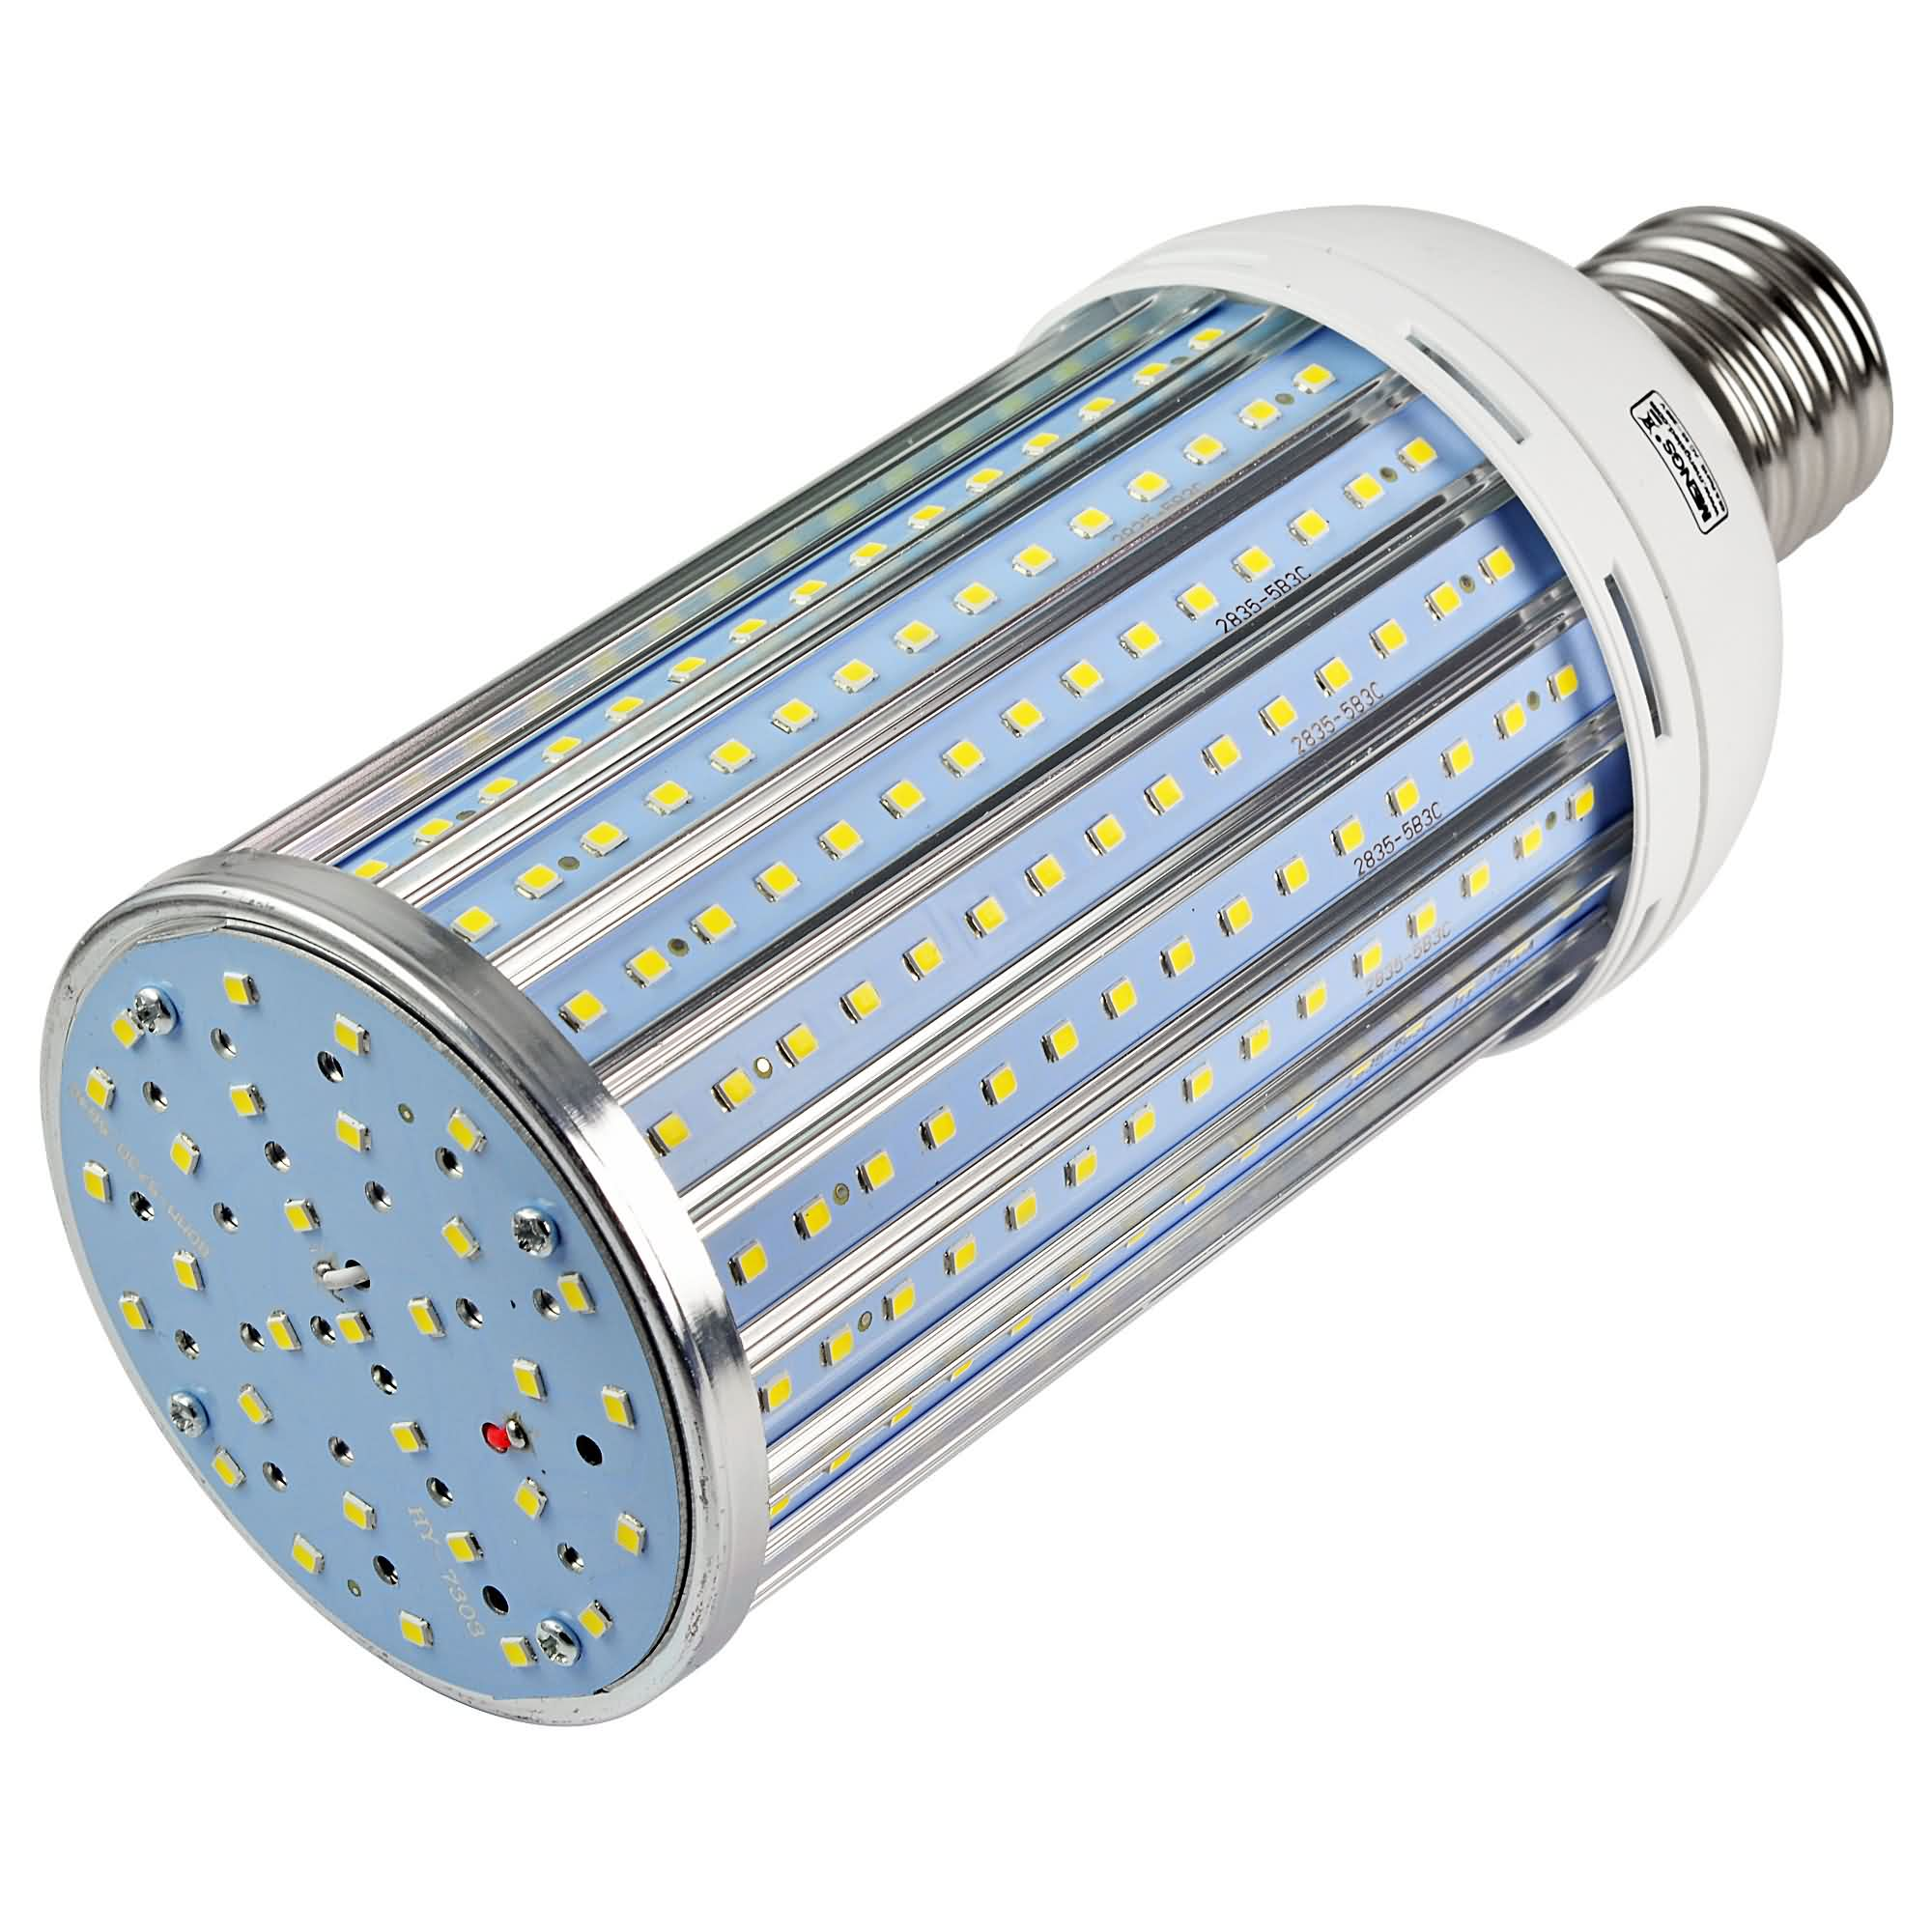 Mengsled Mengs E40 65w Led Corn Light 300x 2835 Smd Led Bulb Lamp In Warm Cool White Energy